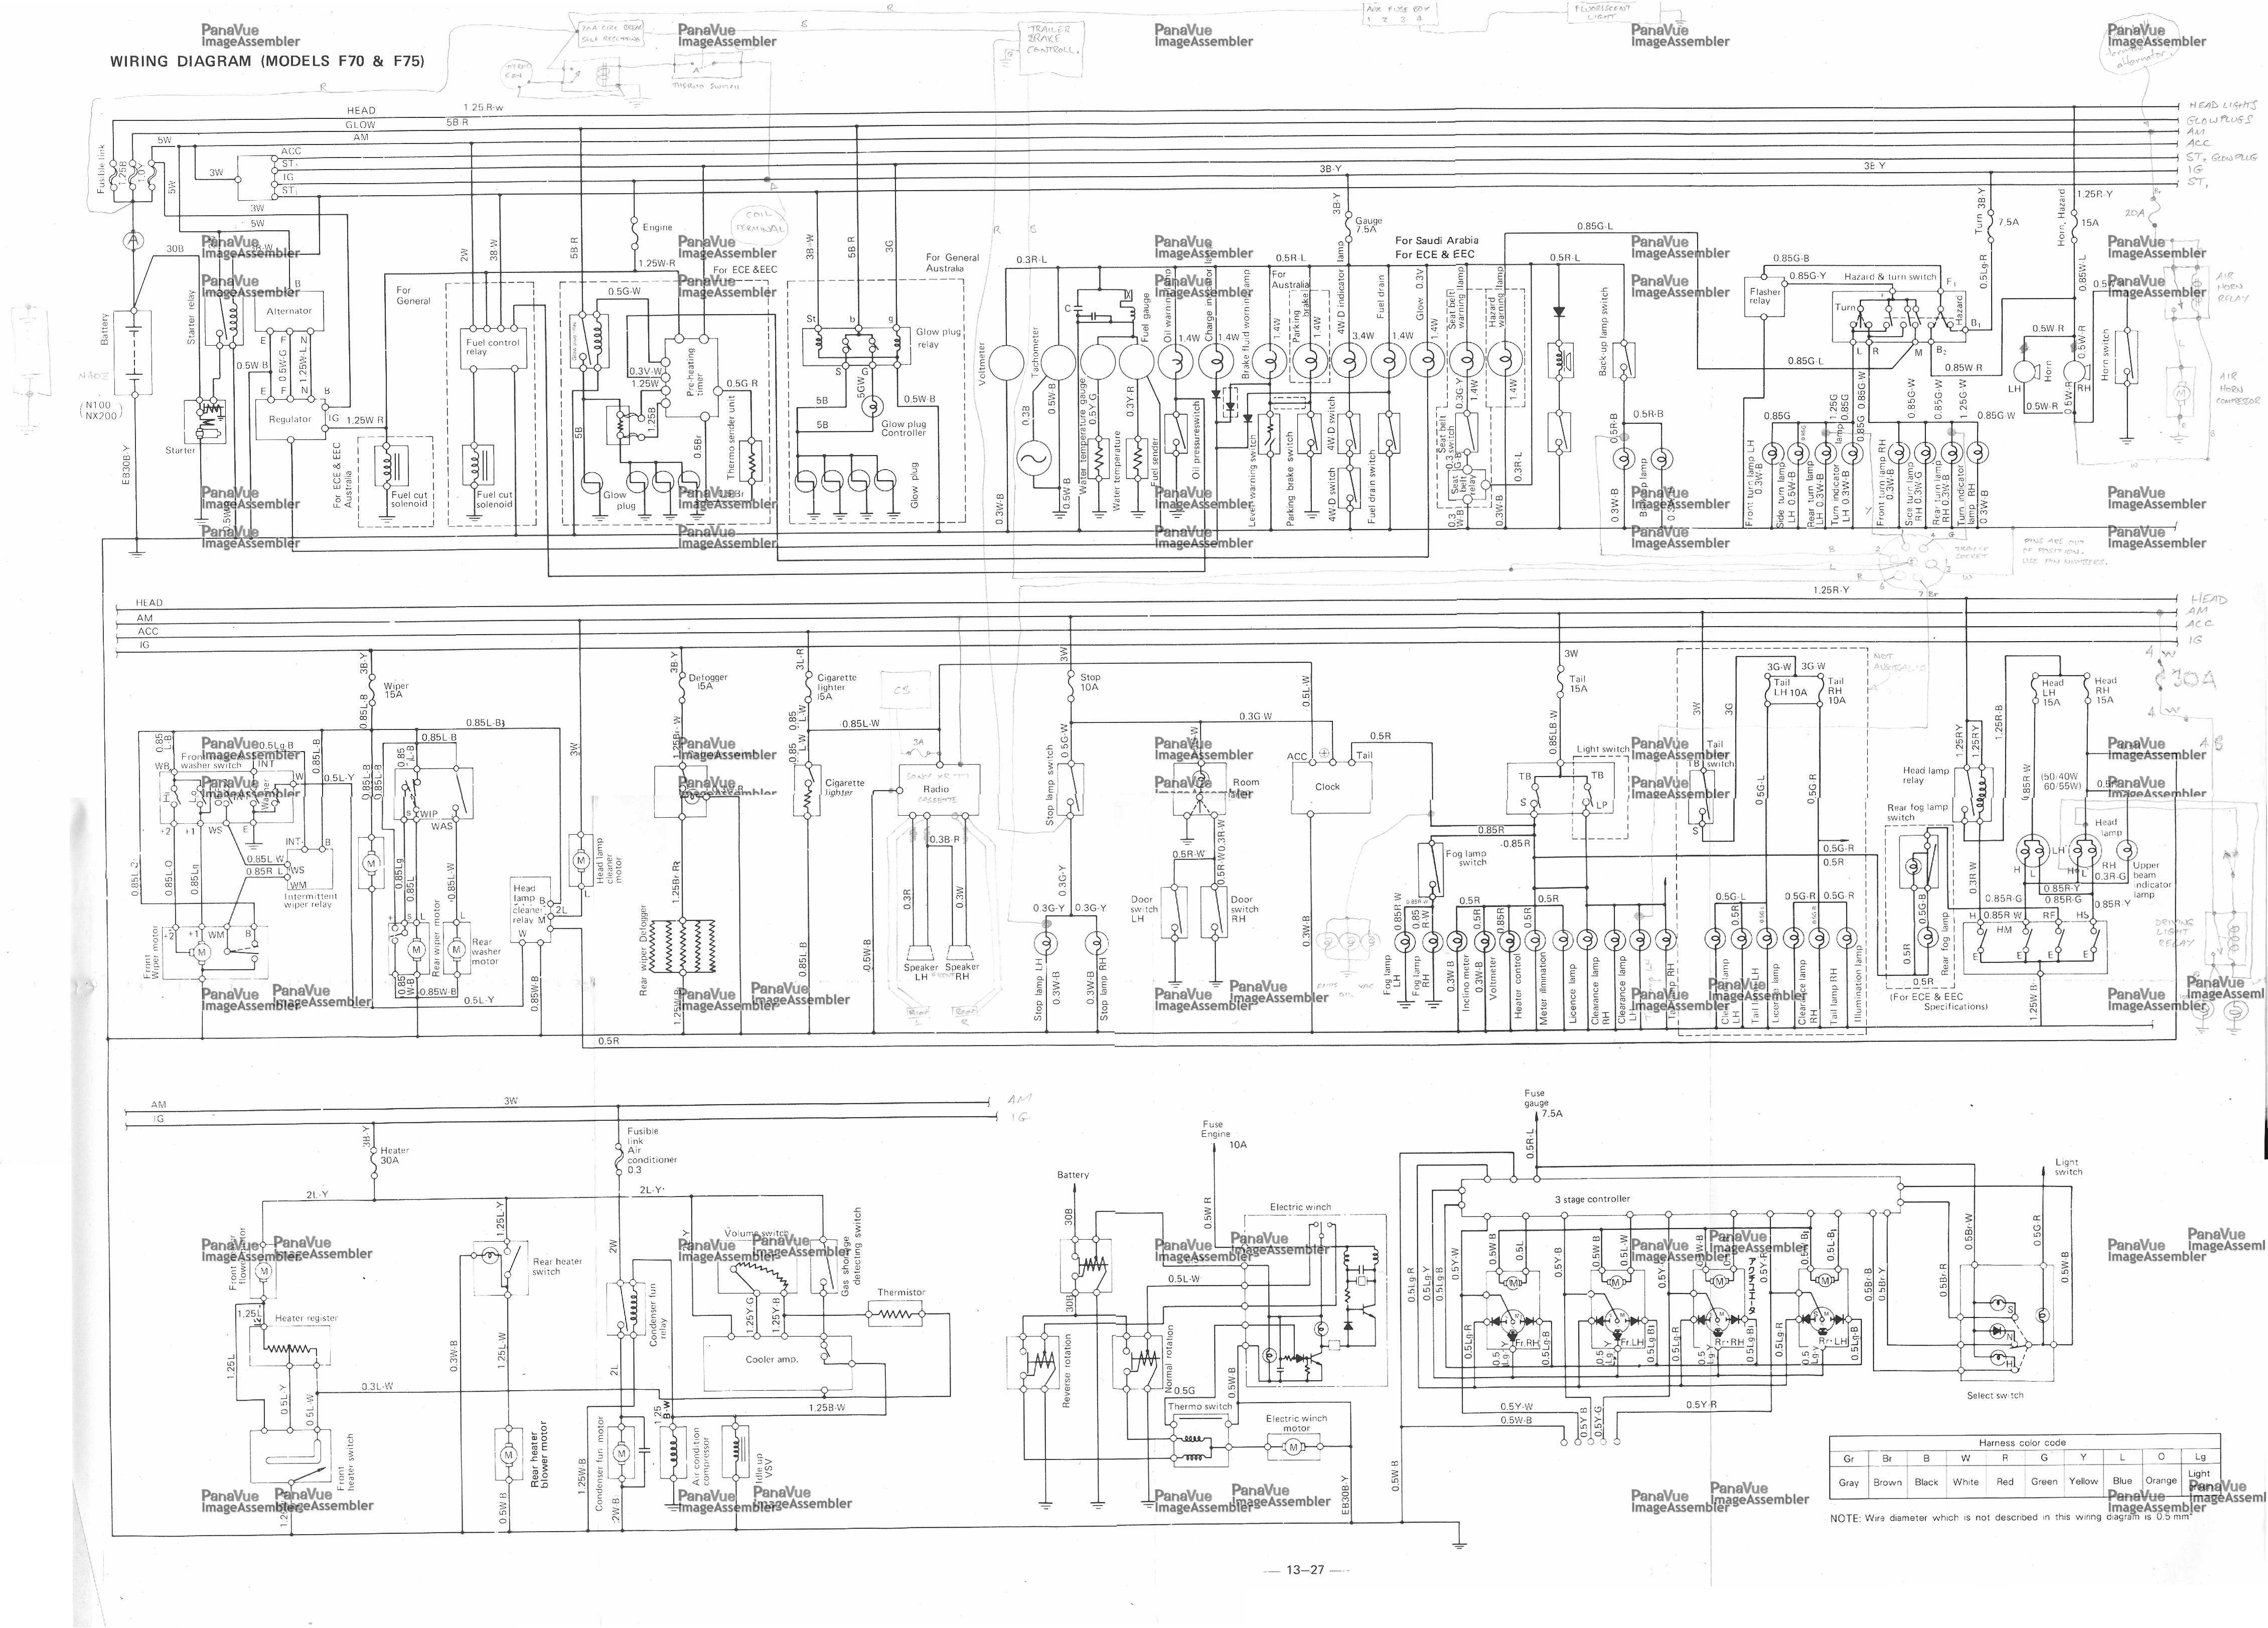 Fiat Stilo Wiring Diagram Pdf Explained Diagrams Amphicar 124 1978 Engine 128